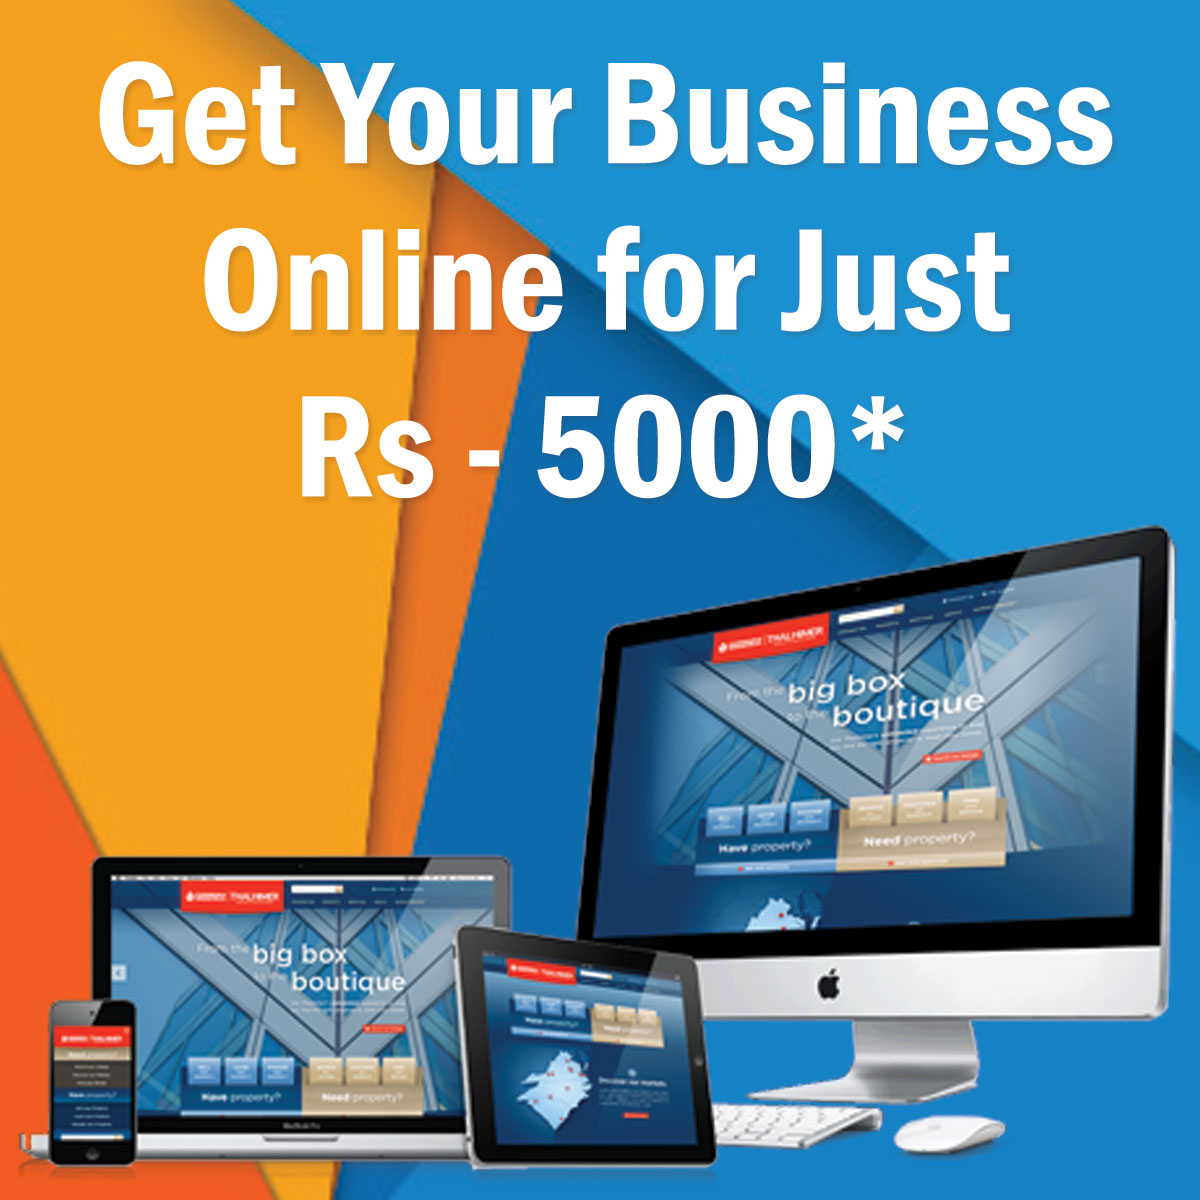 Get Your Business Website For Just Rs 5000*